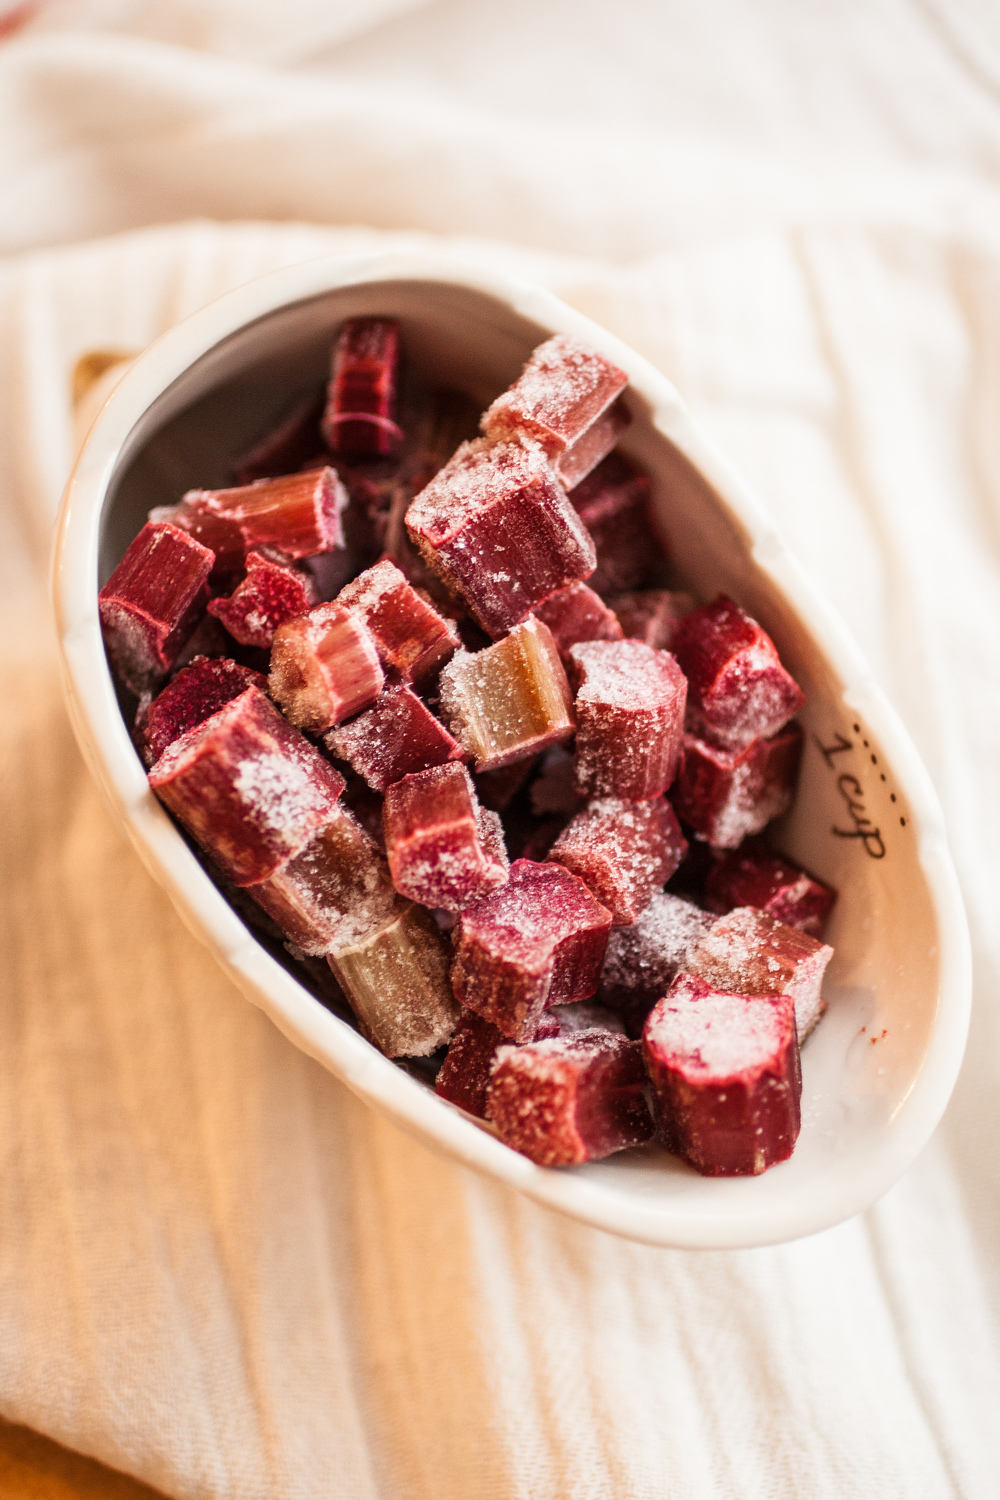 Produce On Parade - Apple Rhu-Berry Fruit Leather - Sweet and tart, these homemade fruit leathers are chewy and nutritious with juicy apples, rhubarb, and blueberries. No refined sugar too!